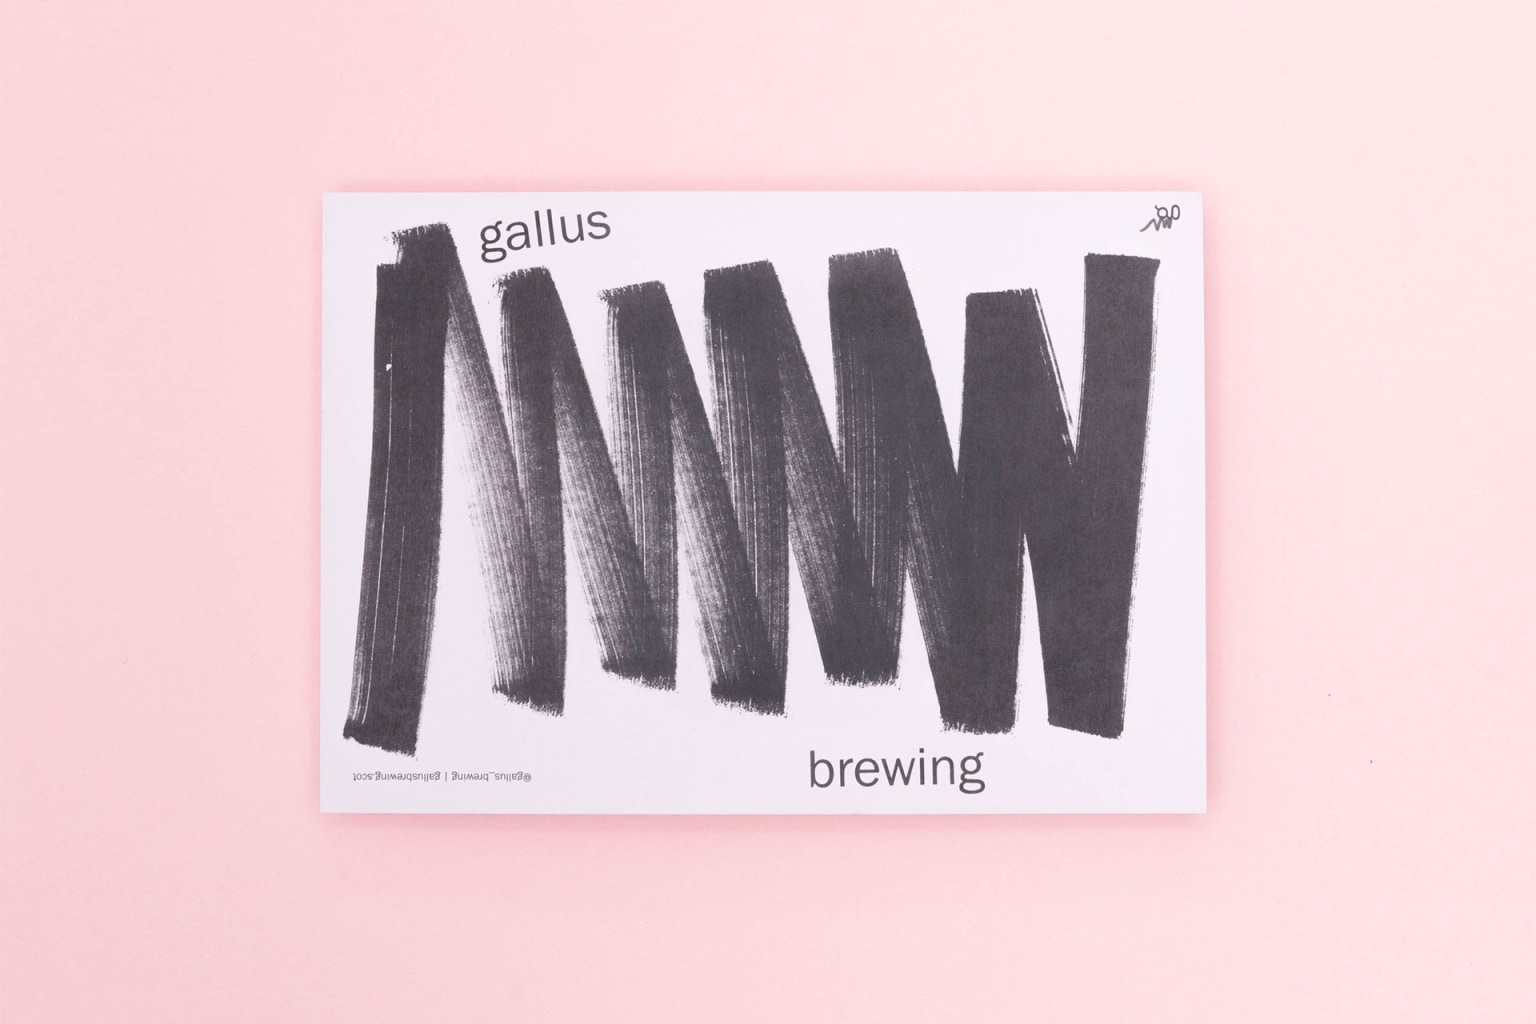 Gallus Brewing